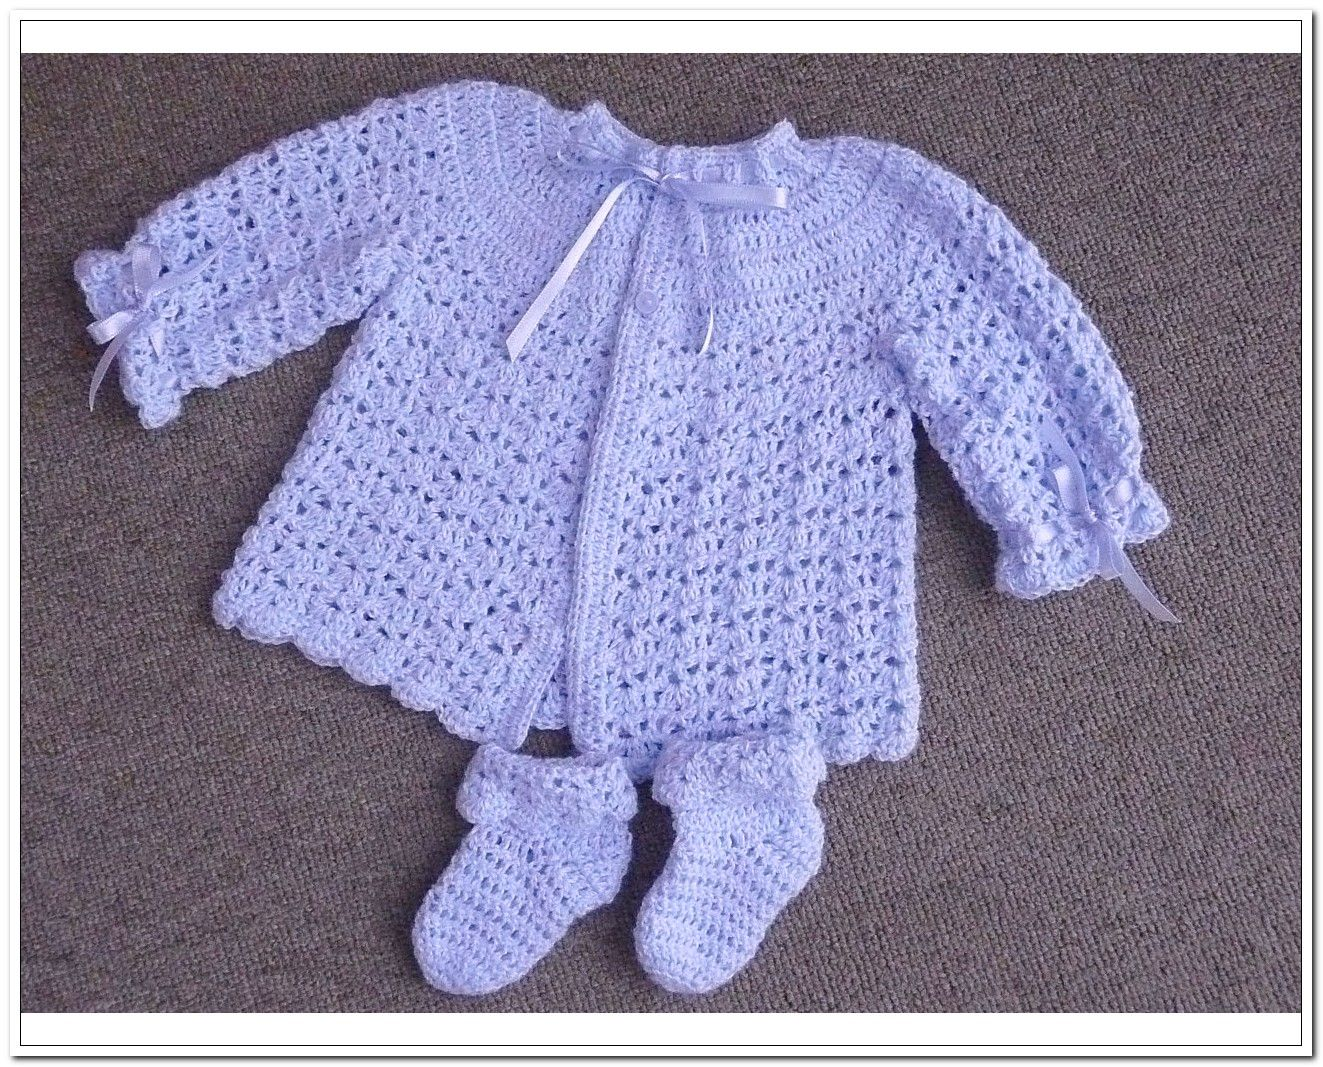 Knit baby sweater patterns for beginners baby sweater knitting knit baby sweater patterns for beginners baby sweater knitting pattern daily knitting patterns loving pattern bankloansurffo Image collections